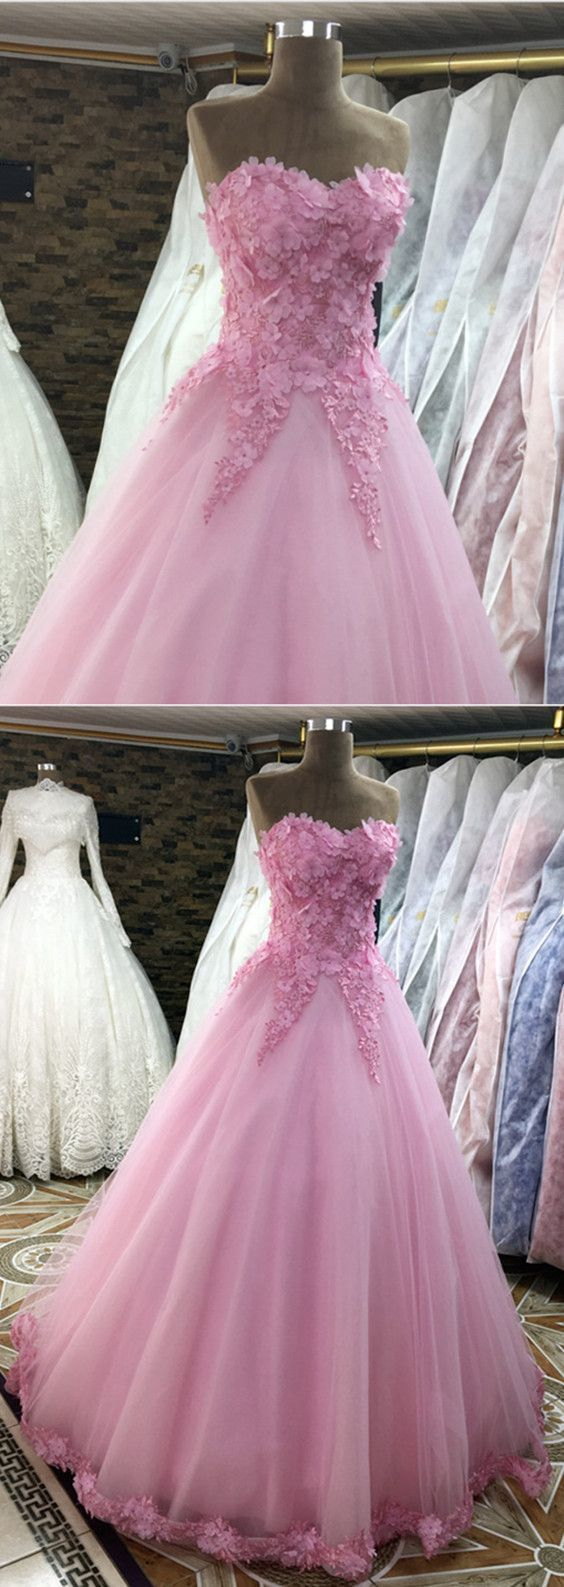 Pink Lace Flowers Sweetheart Tulle Ball Gowns Quinceanera Dresses